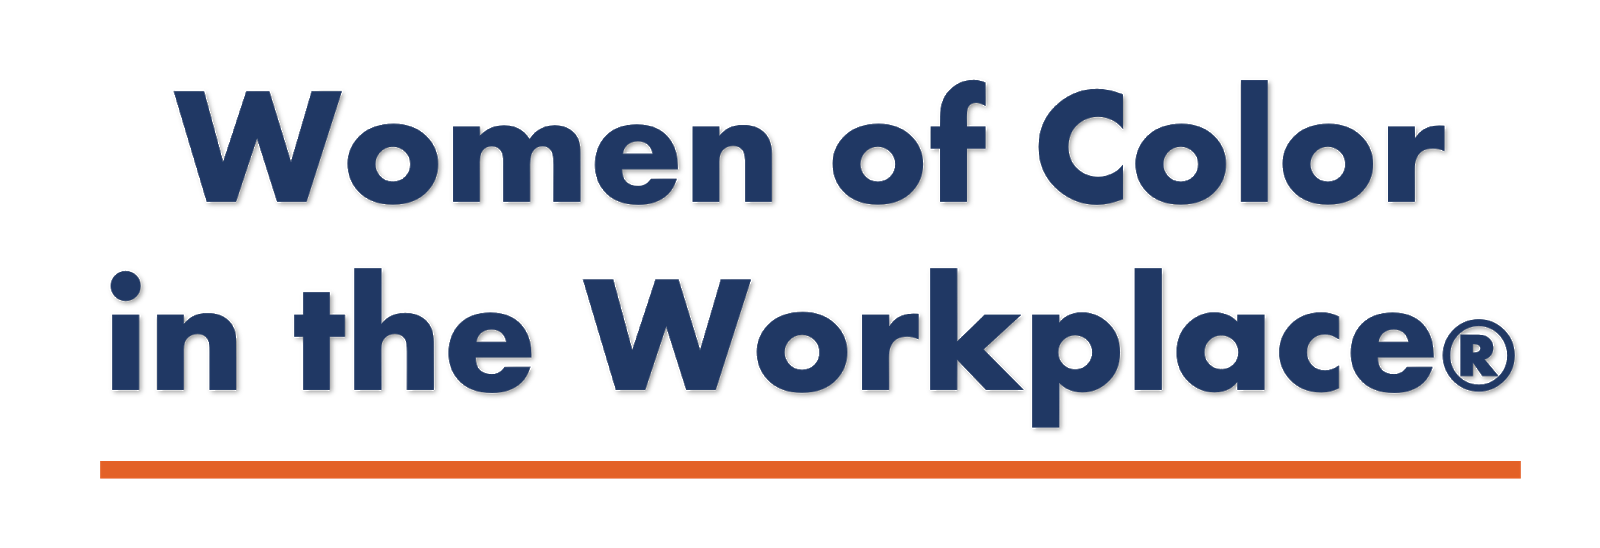 Women of Color in the Workplace®